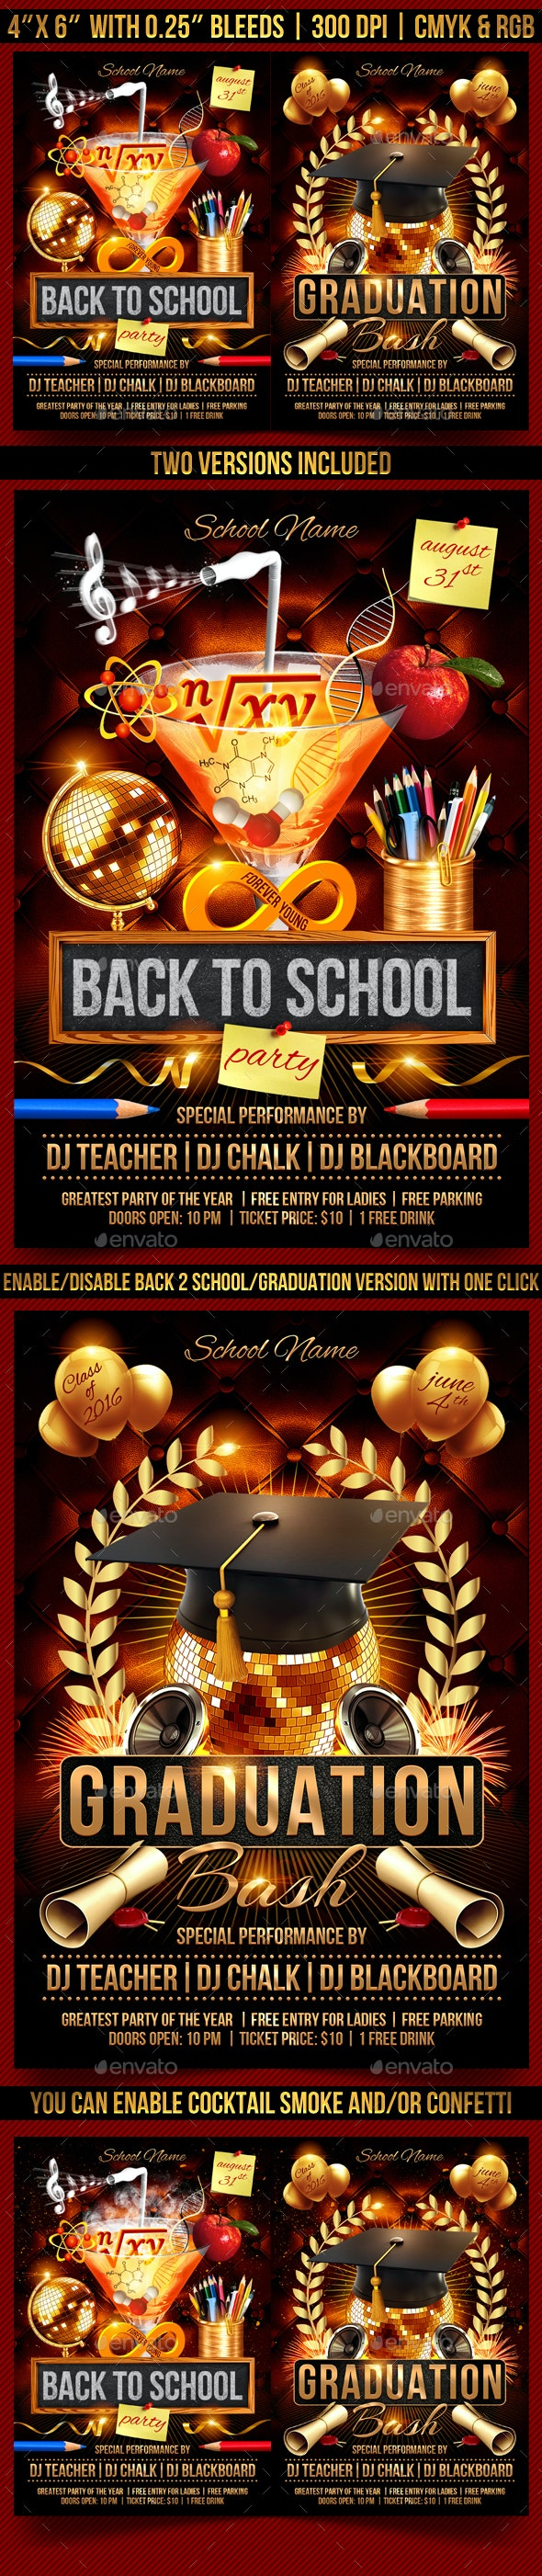 Back to School and Graduation Flyer - Clubs & Parties Events